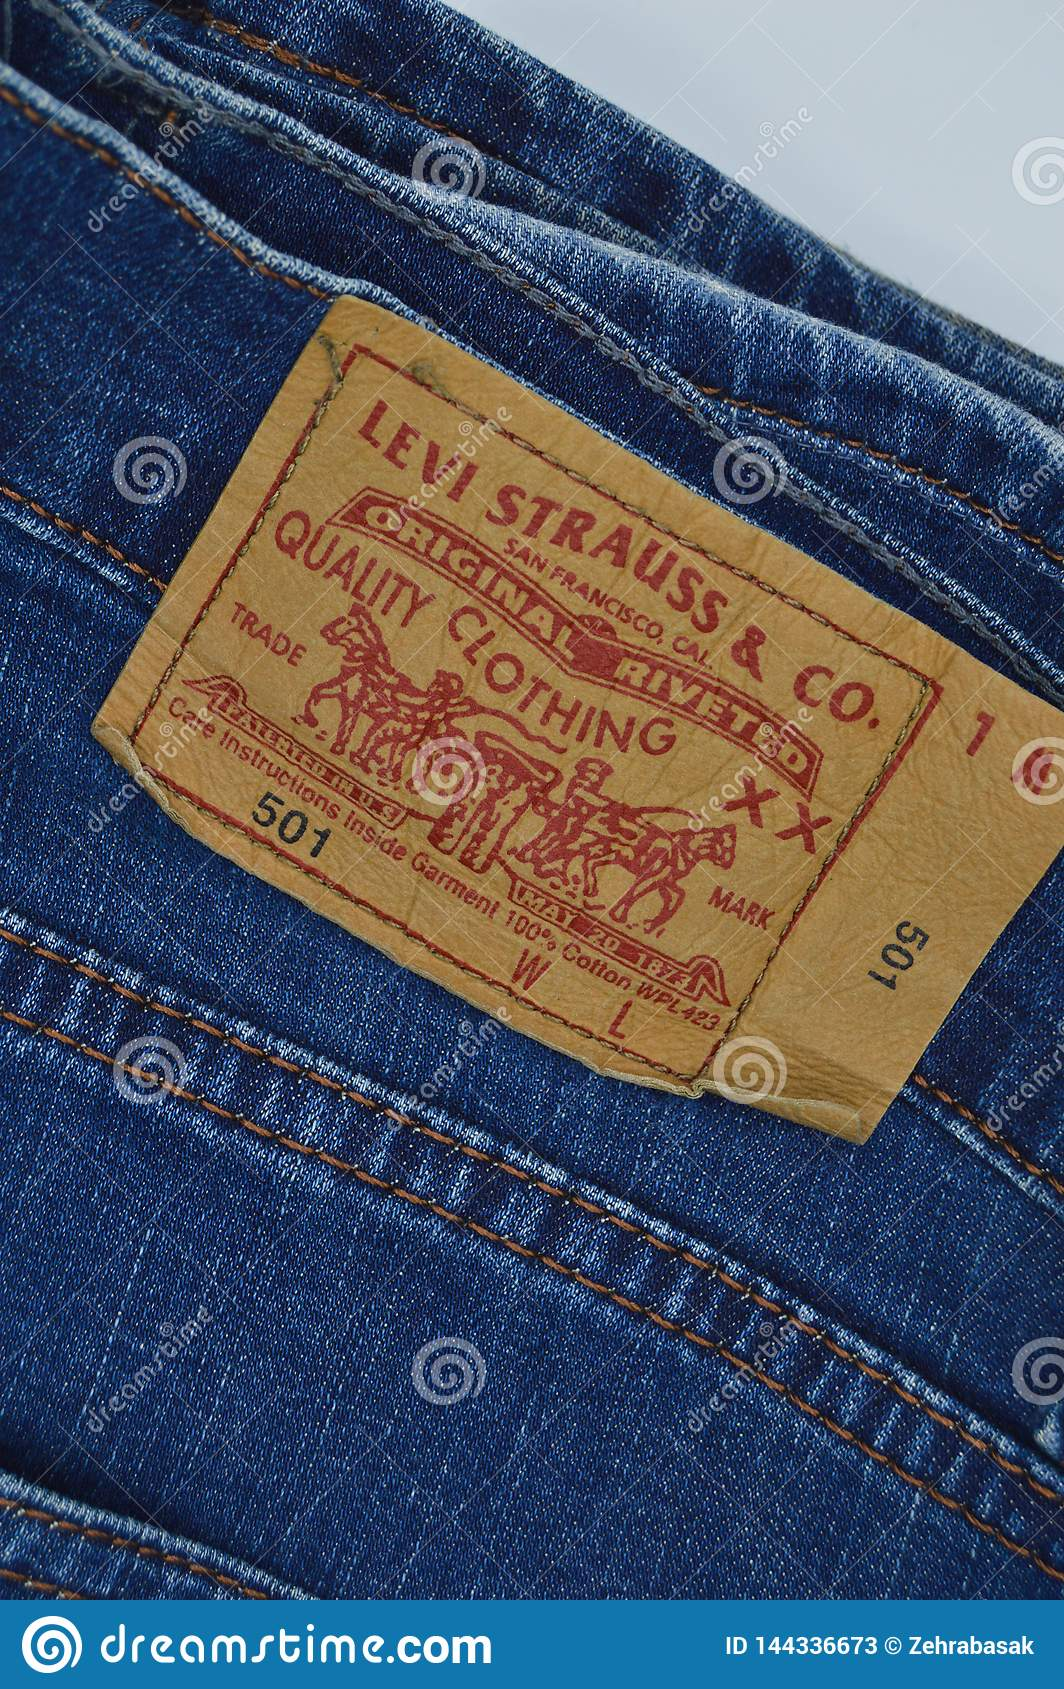 a6340441 Levi Strauss 501 label editorial stock photo. Image of clothing ...